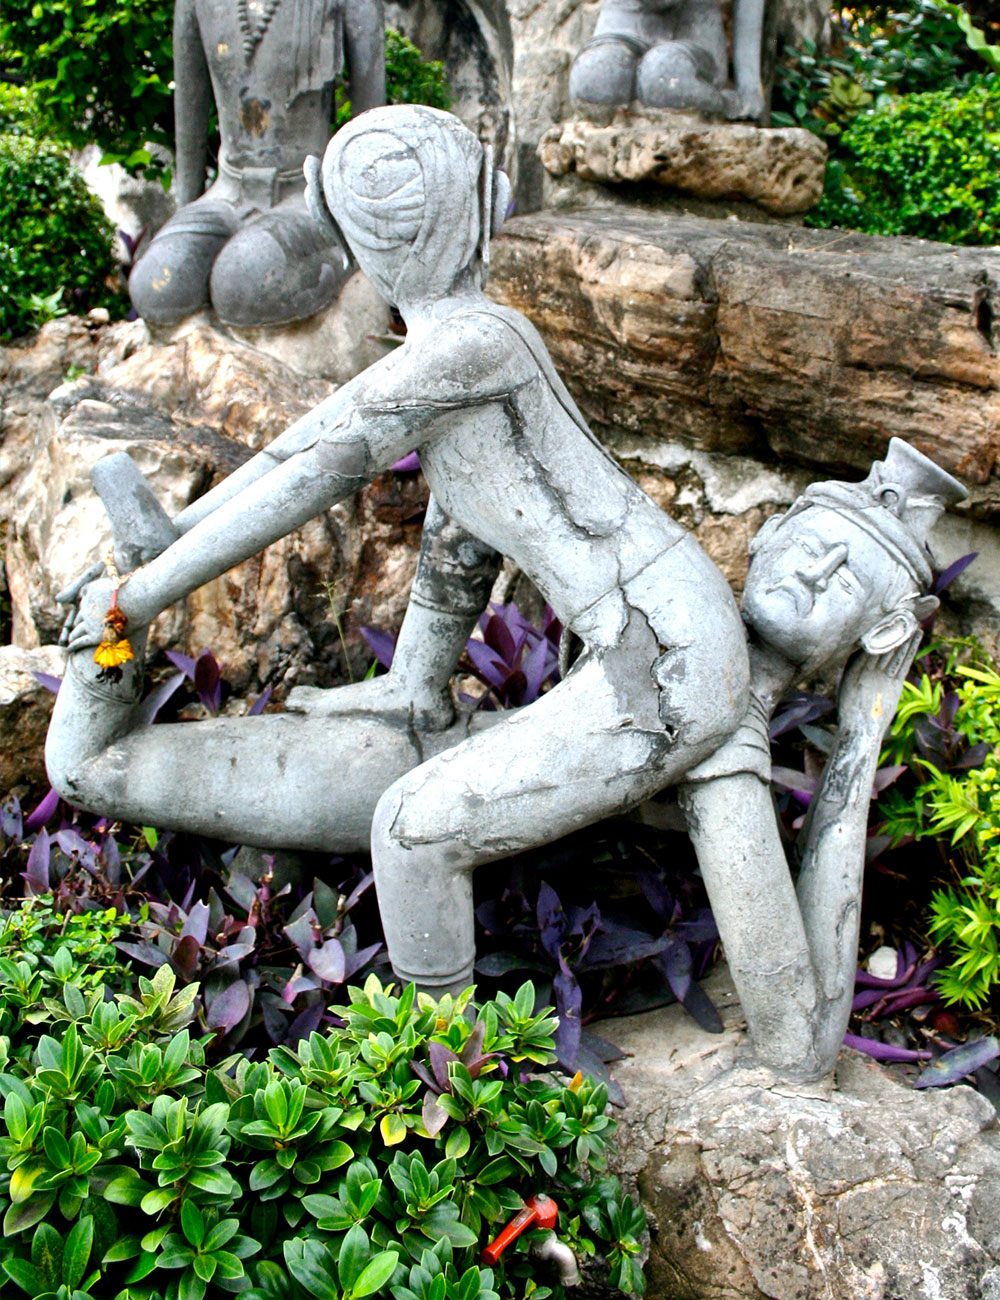 Thai massage sculpture